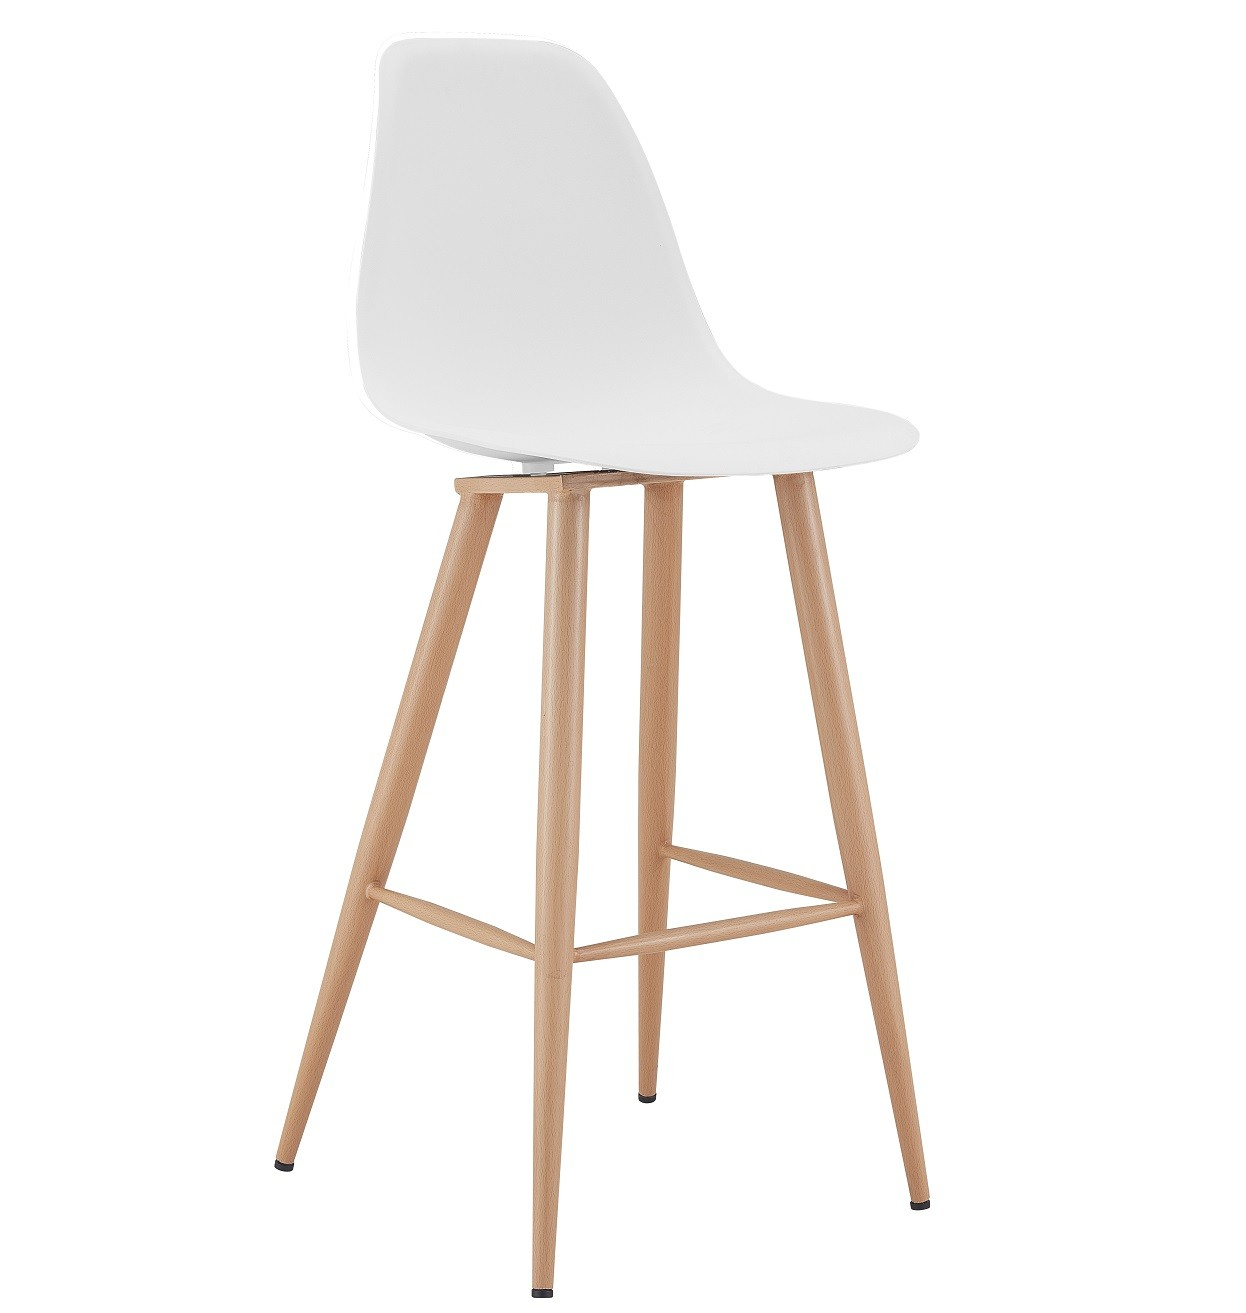 Stool CLUNY, Metal Wood Color, White Polypropylene